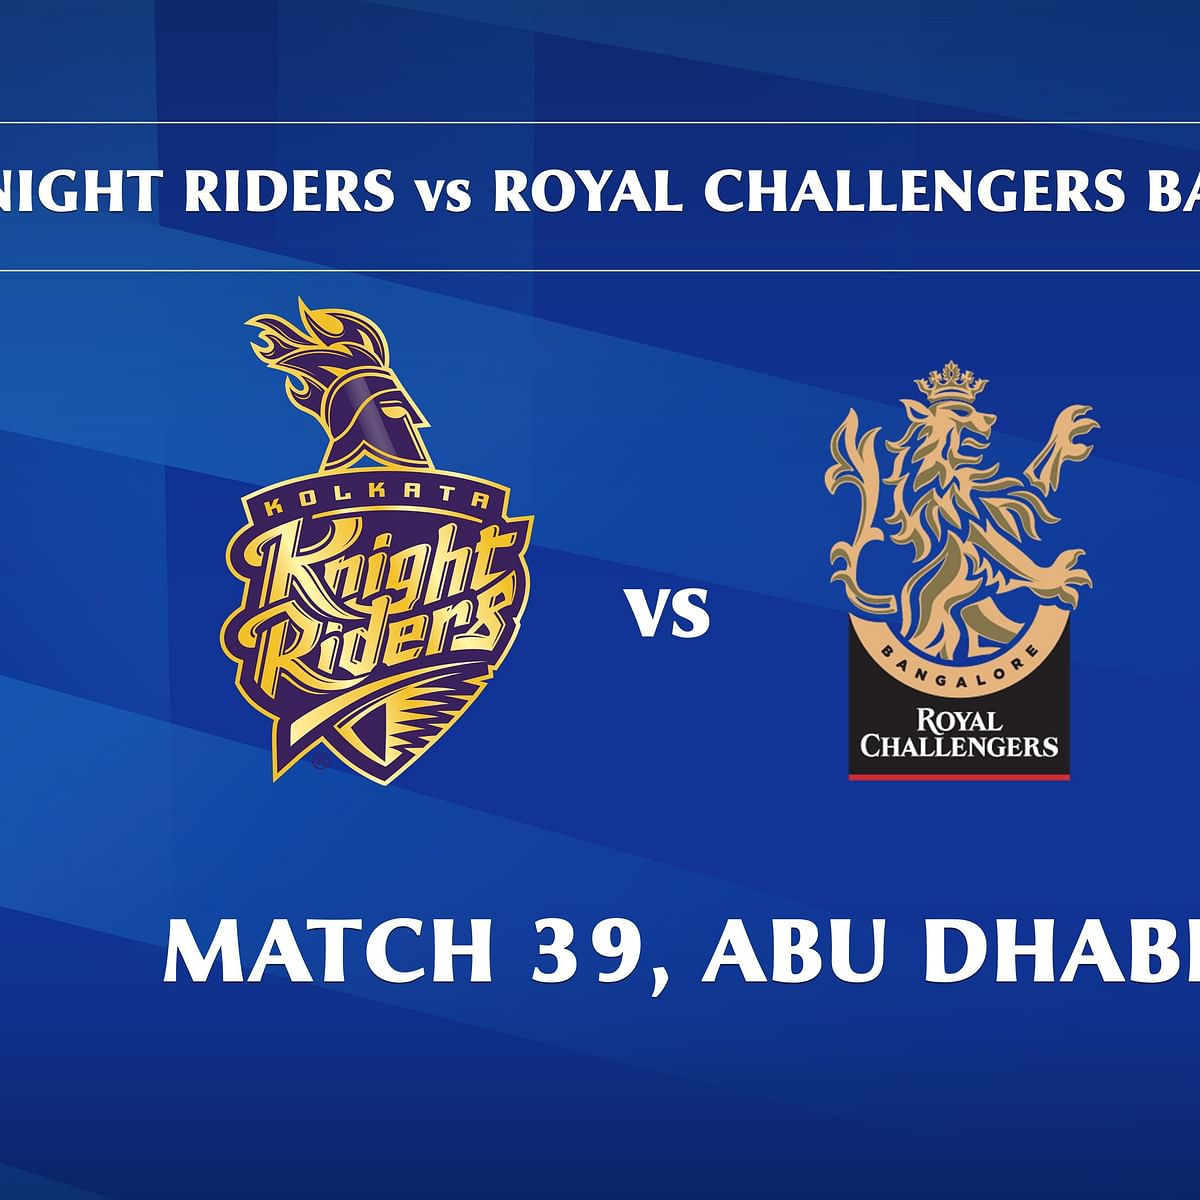 Kolkata Knight Riders vs Royal Challengers Bangalore LIVE: Score, commentary for the 39th match of Dream11 IPL